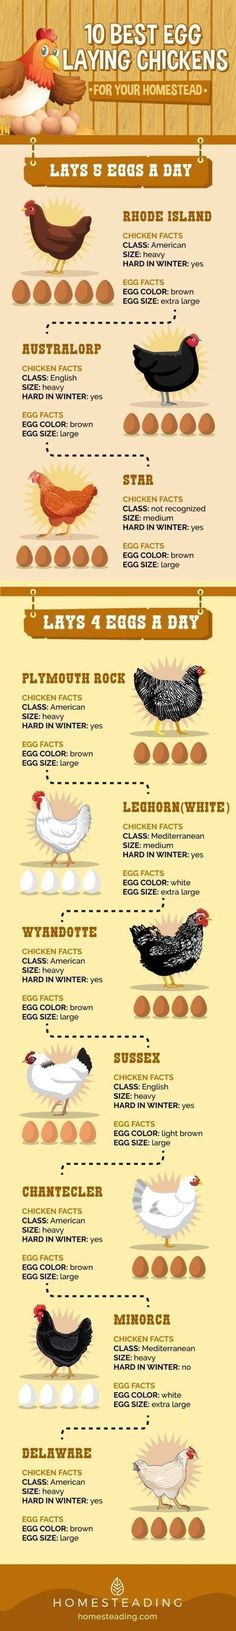 If you plan to raise chicken for eggs, this list will help you find out the best egg laying chickens to raise in your homestead. #RaisingChickens #raisingchickensforeggs #egglayingchickens